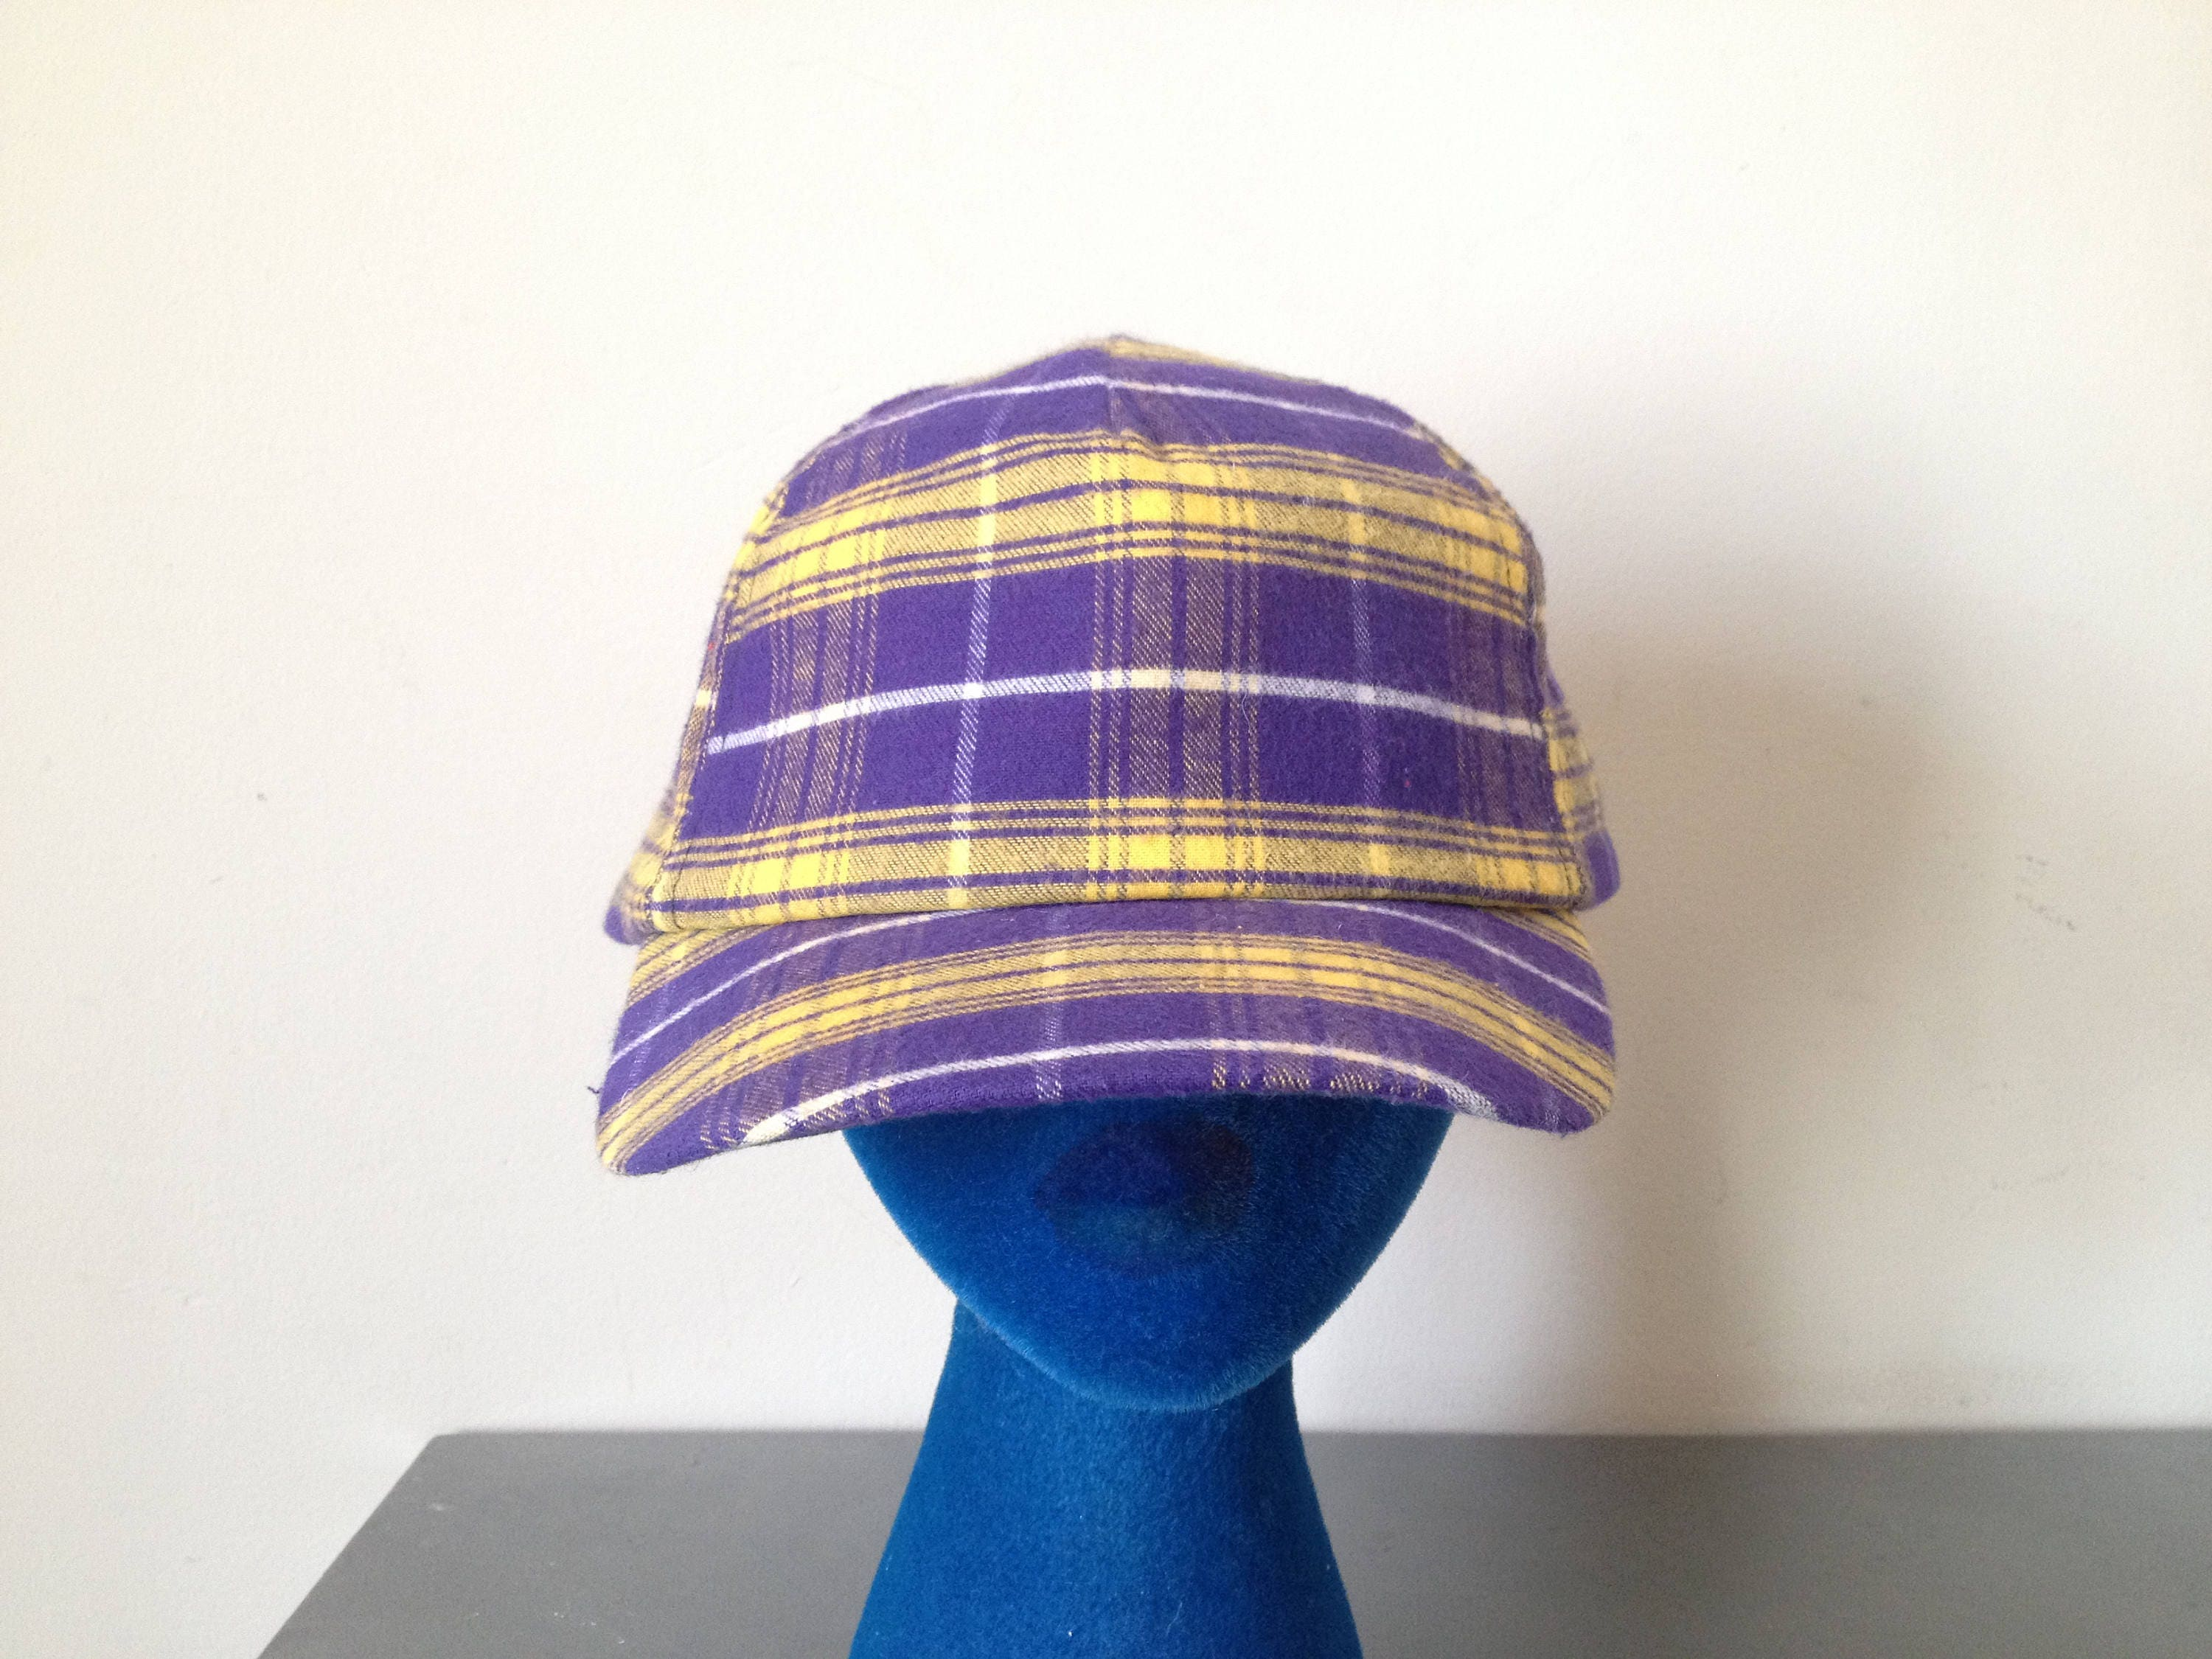 c3e16449f3e Vintage 80 s Purple and Yellow Plaid Fresh Prince Of Bel Air Style Snap  Back Dad Hat